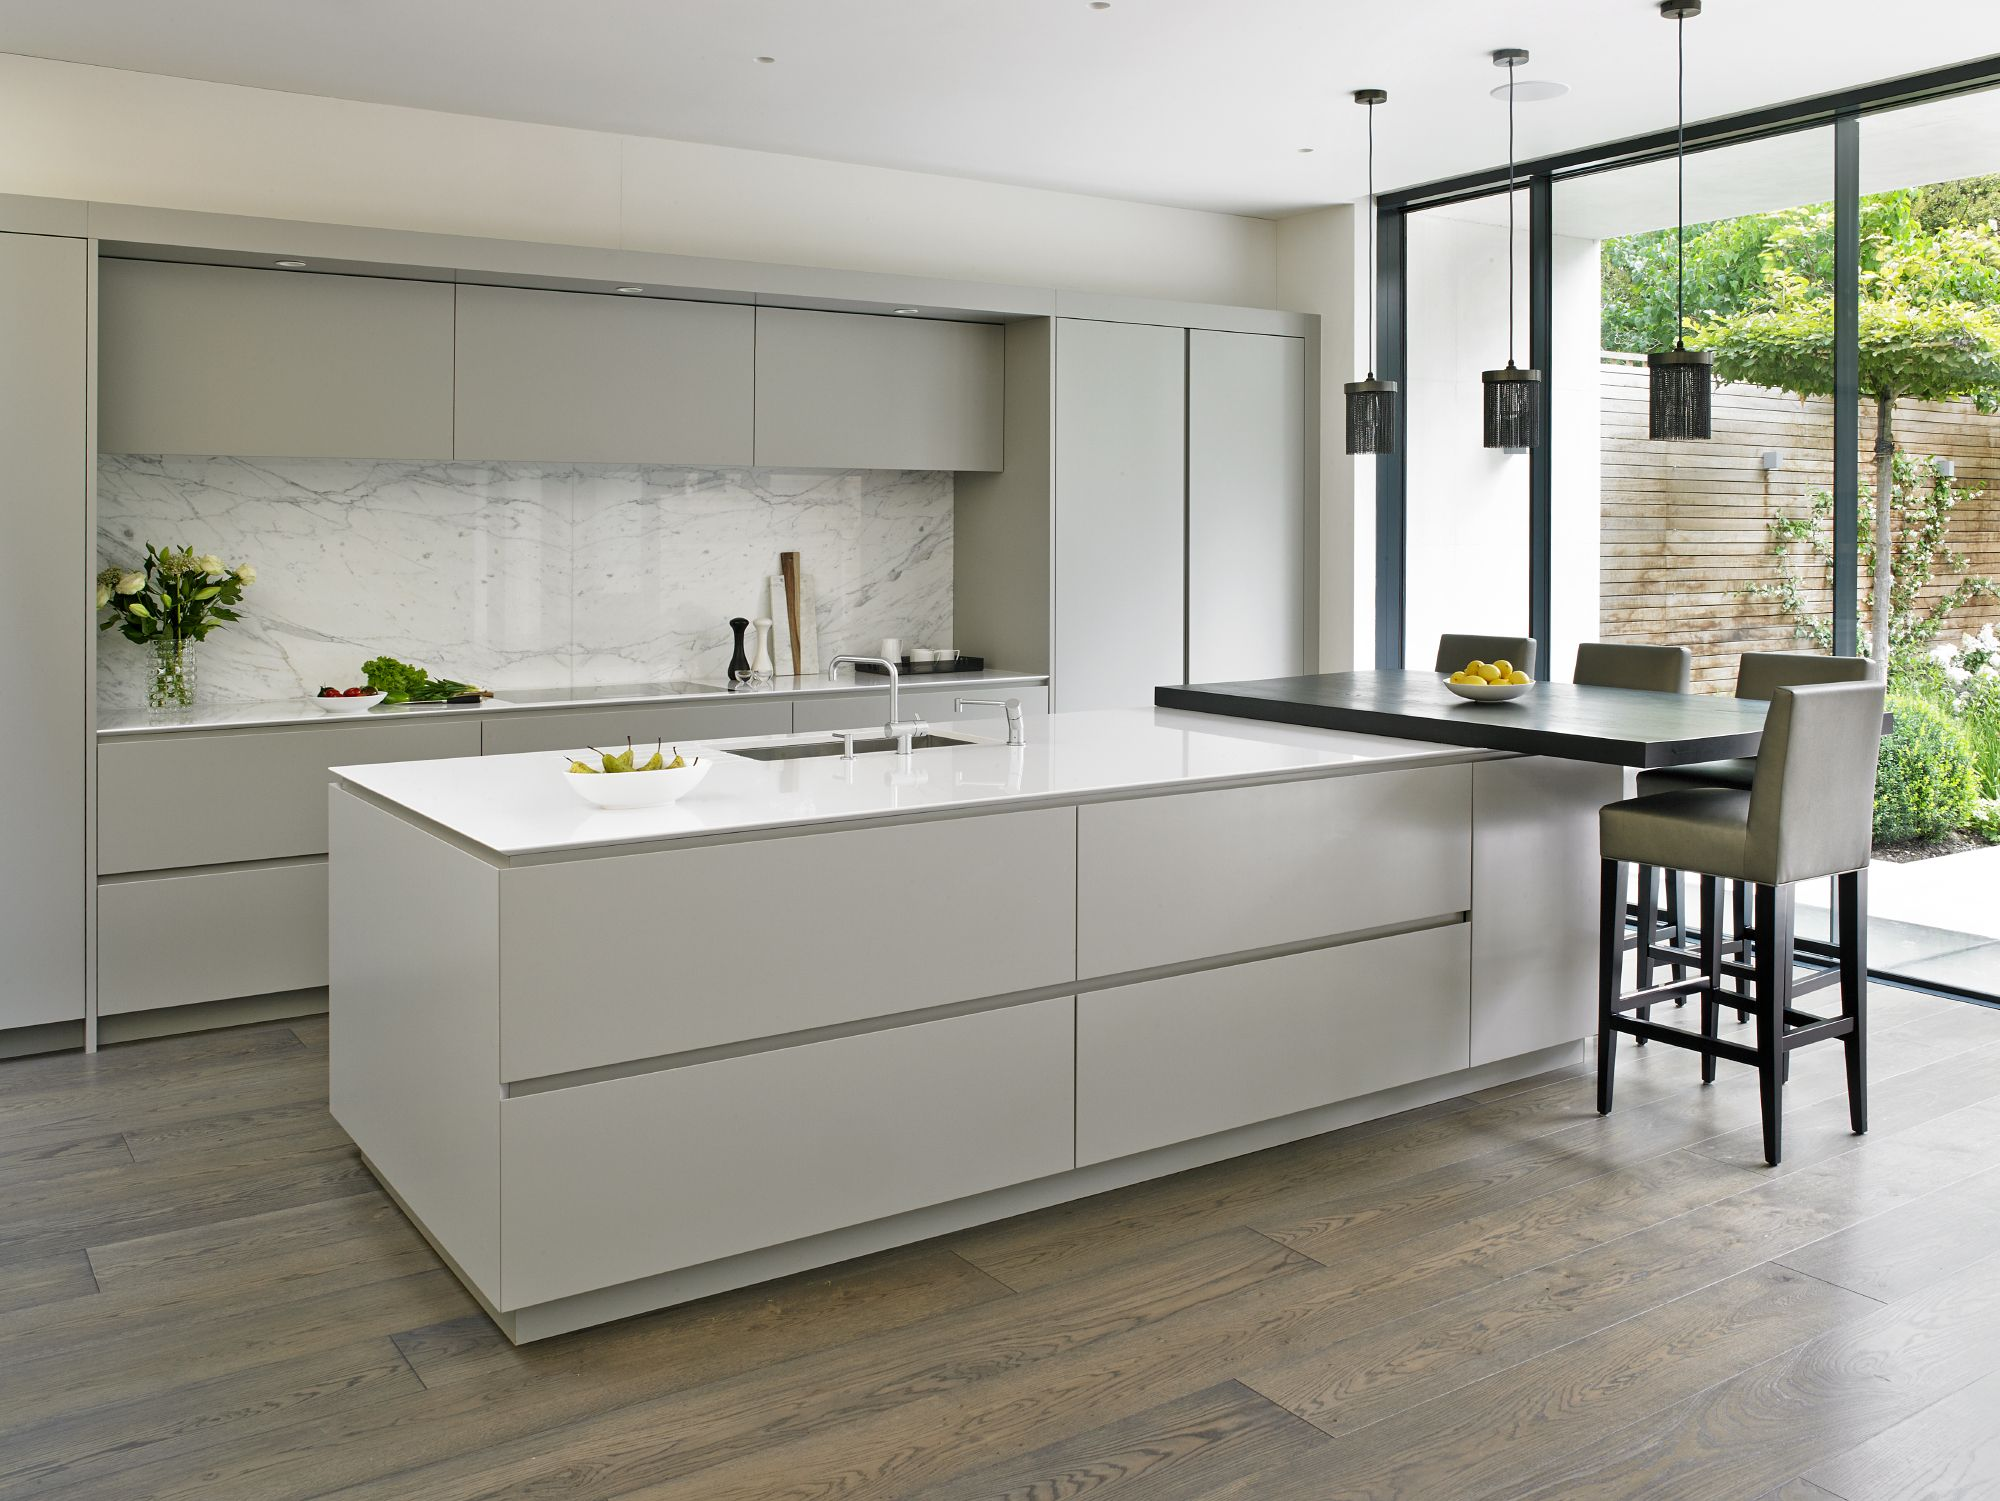 Kitchen make your kitchen dazzle with pertaining to kitchen design - Sleek Handleless Kitchen Design With Large Island Breakfast Bar Marble Splashback And Floor To